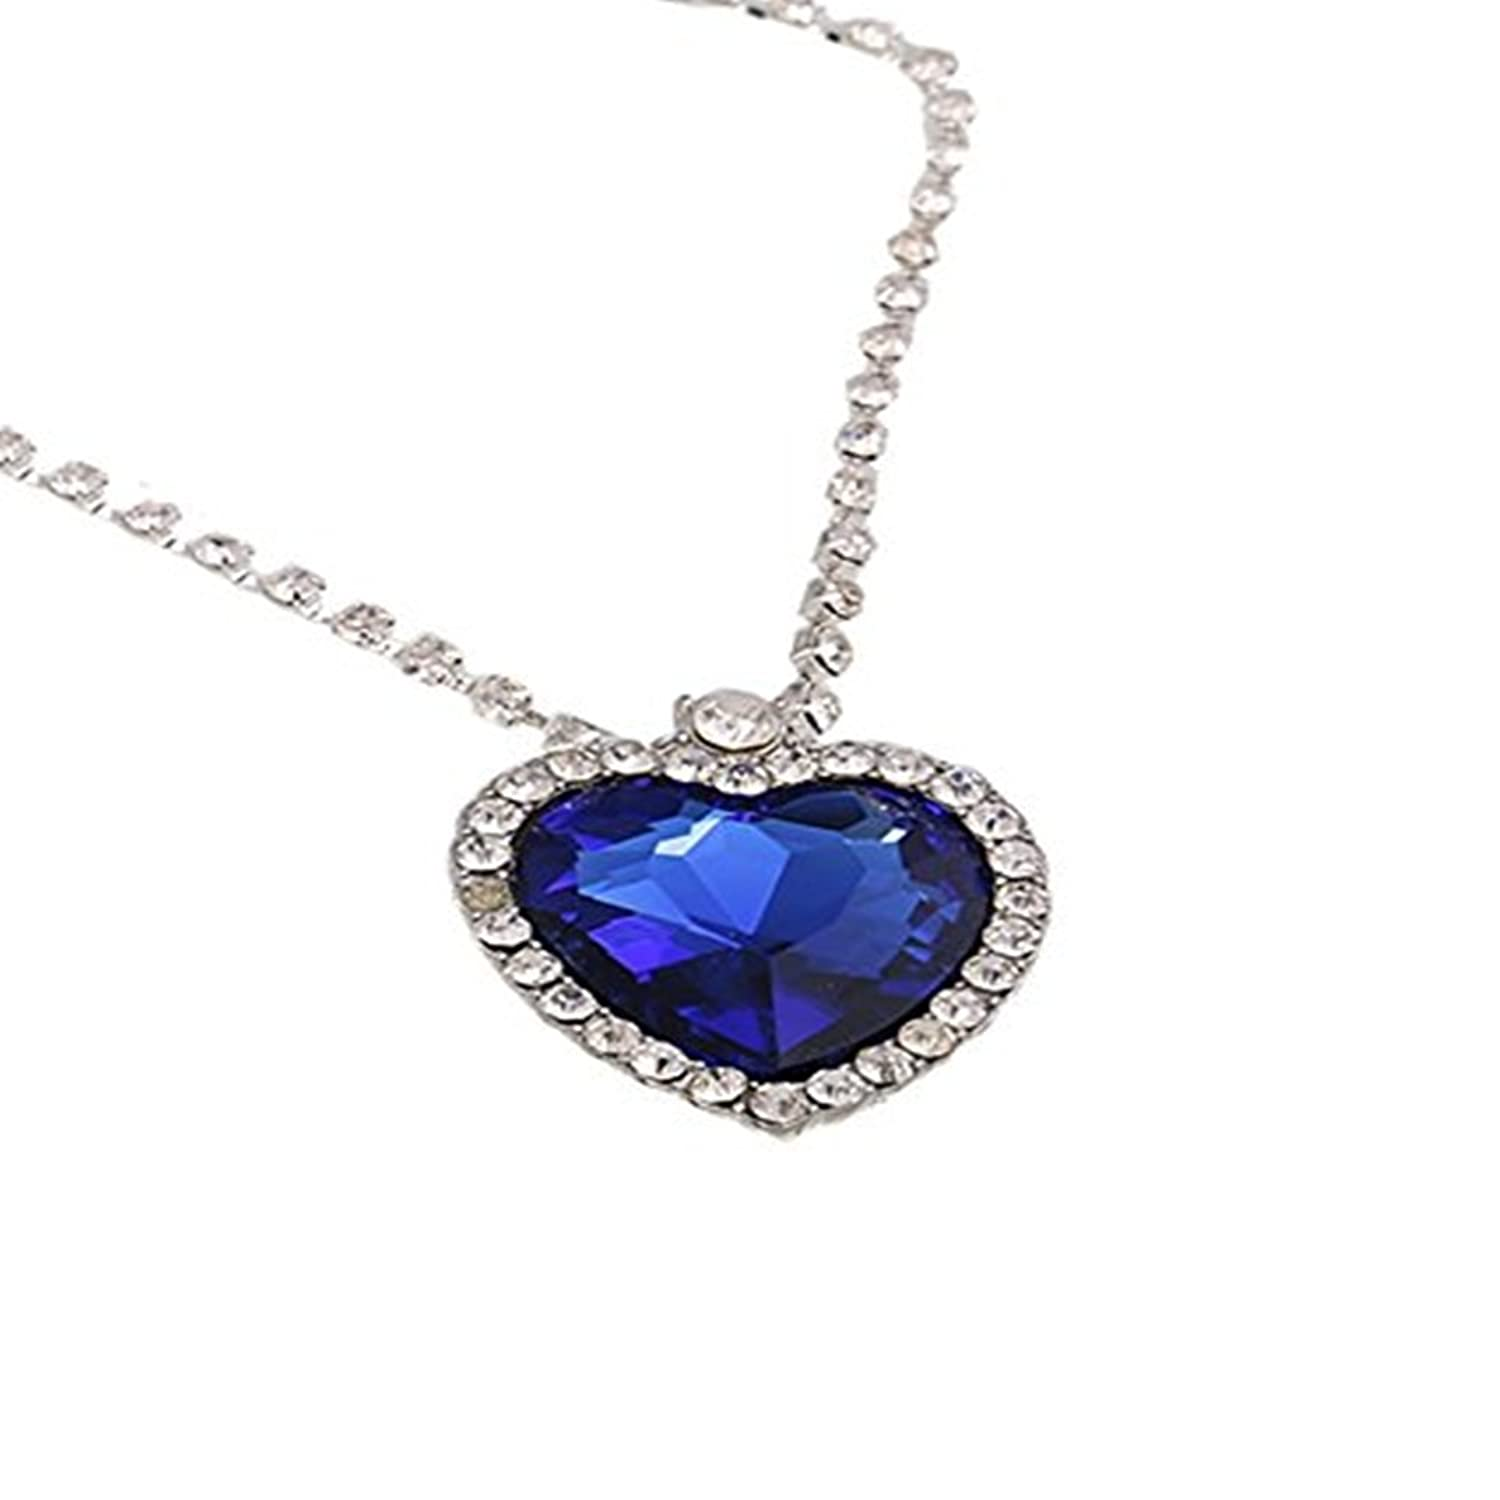 Buy caratcube sapphire blue austrian crystal heart of the ocean buy caratcube sapphire blue austrian crystal heart of the ocean titanic pendant for women ctc 15 online at low prices in india amazon jewellery store aloadofball Image collections